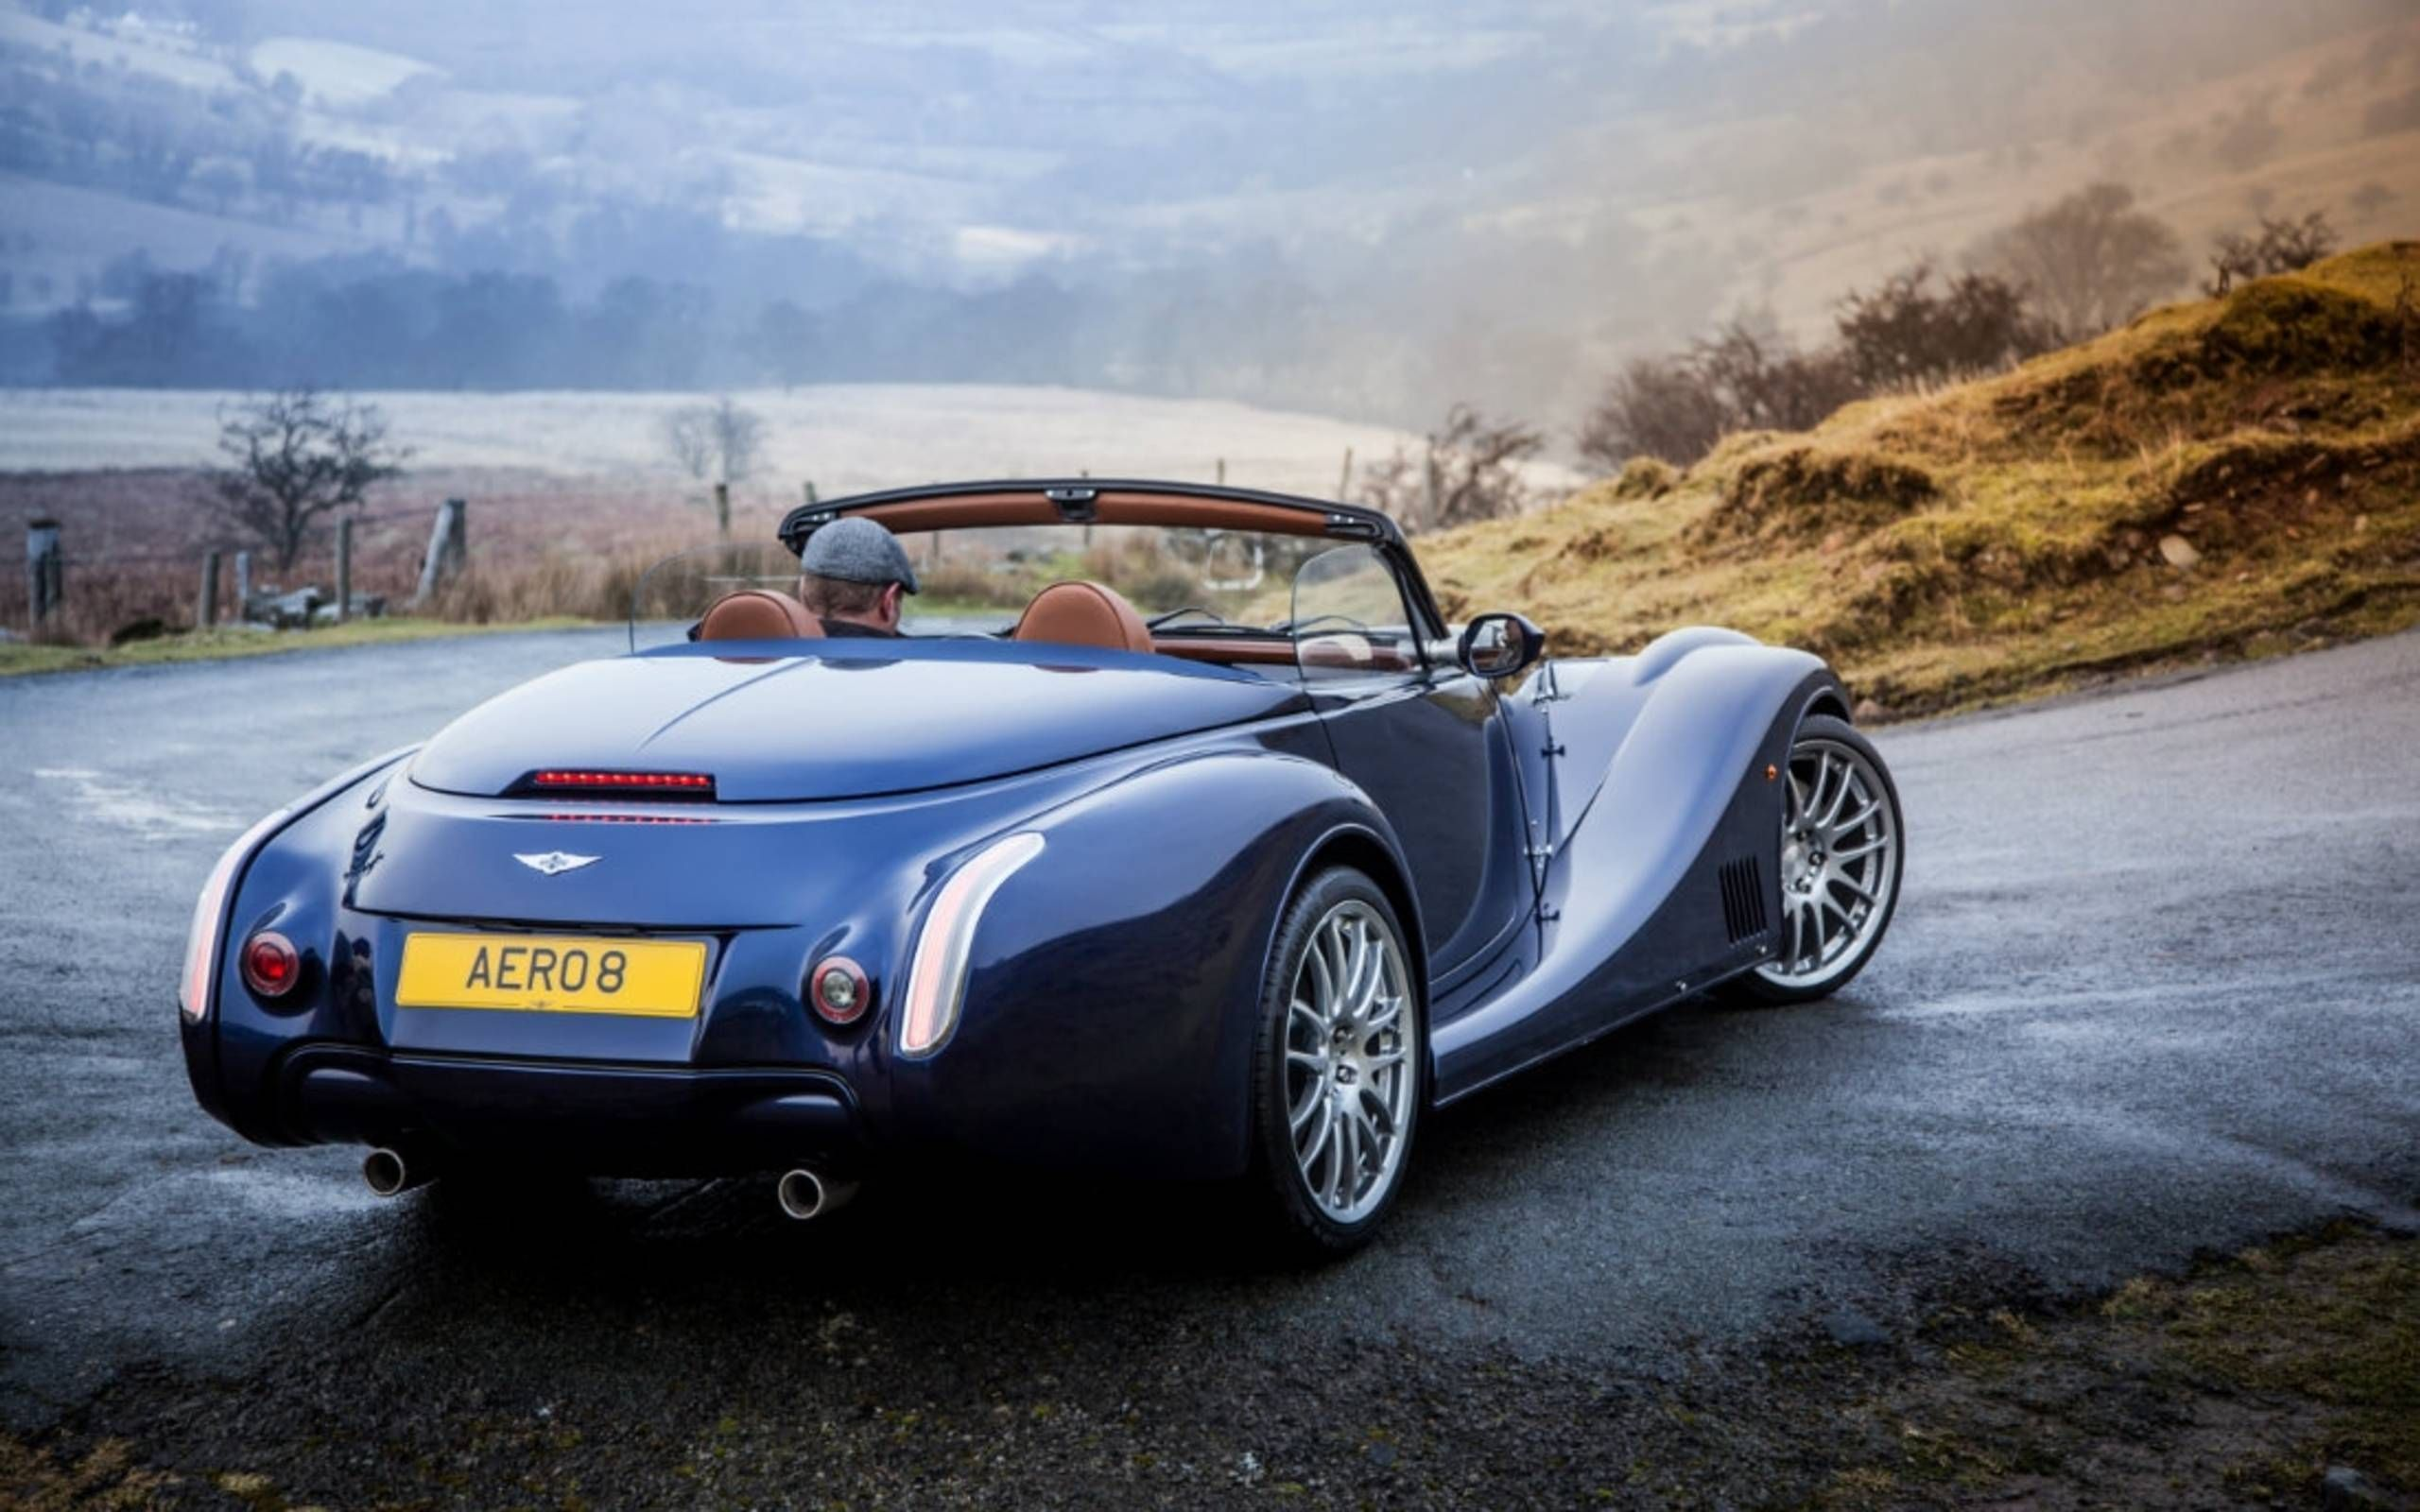 Charming British Automaker Morgan Will Offer Charming Hybrid Powertrains By 2020 The waiting list once famously blew out to nine it's a morgan, after all. charming british automaker morgan will